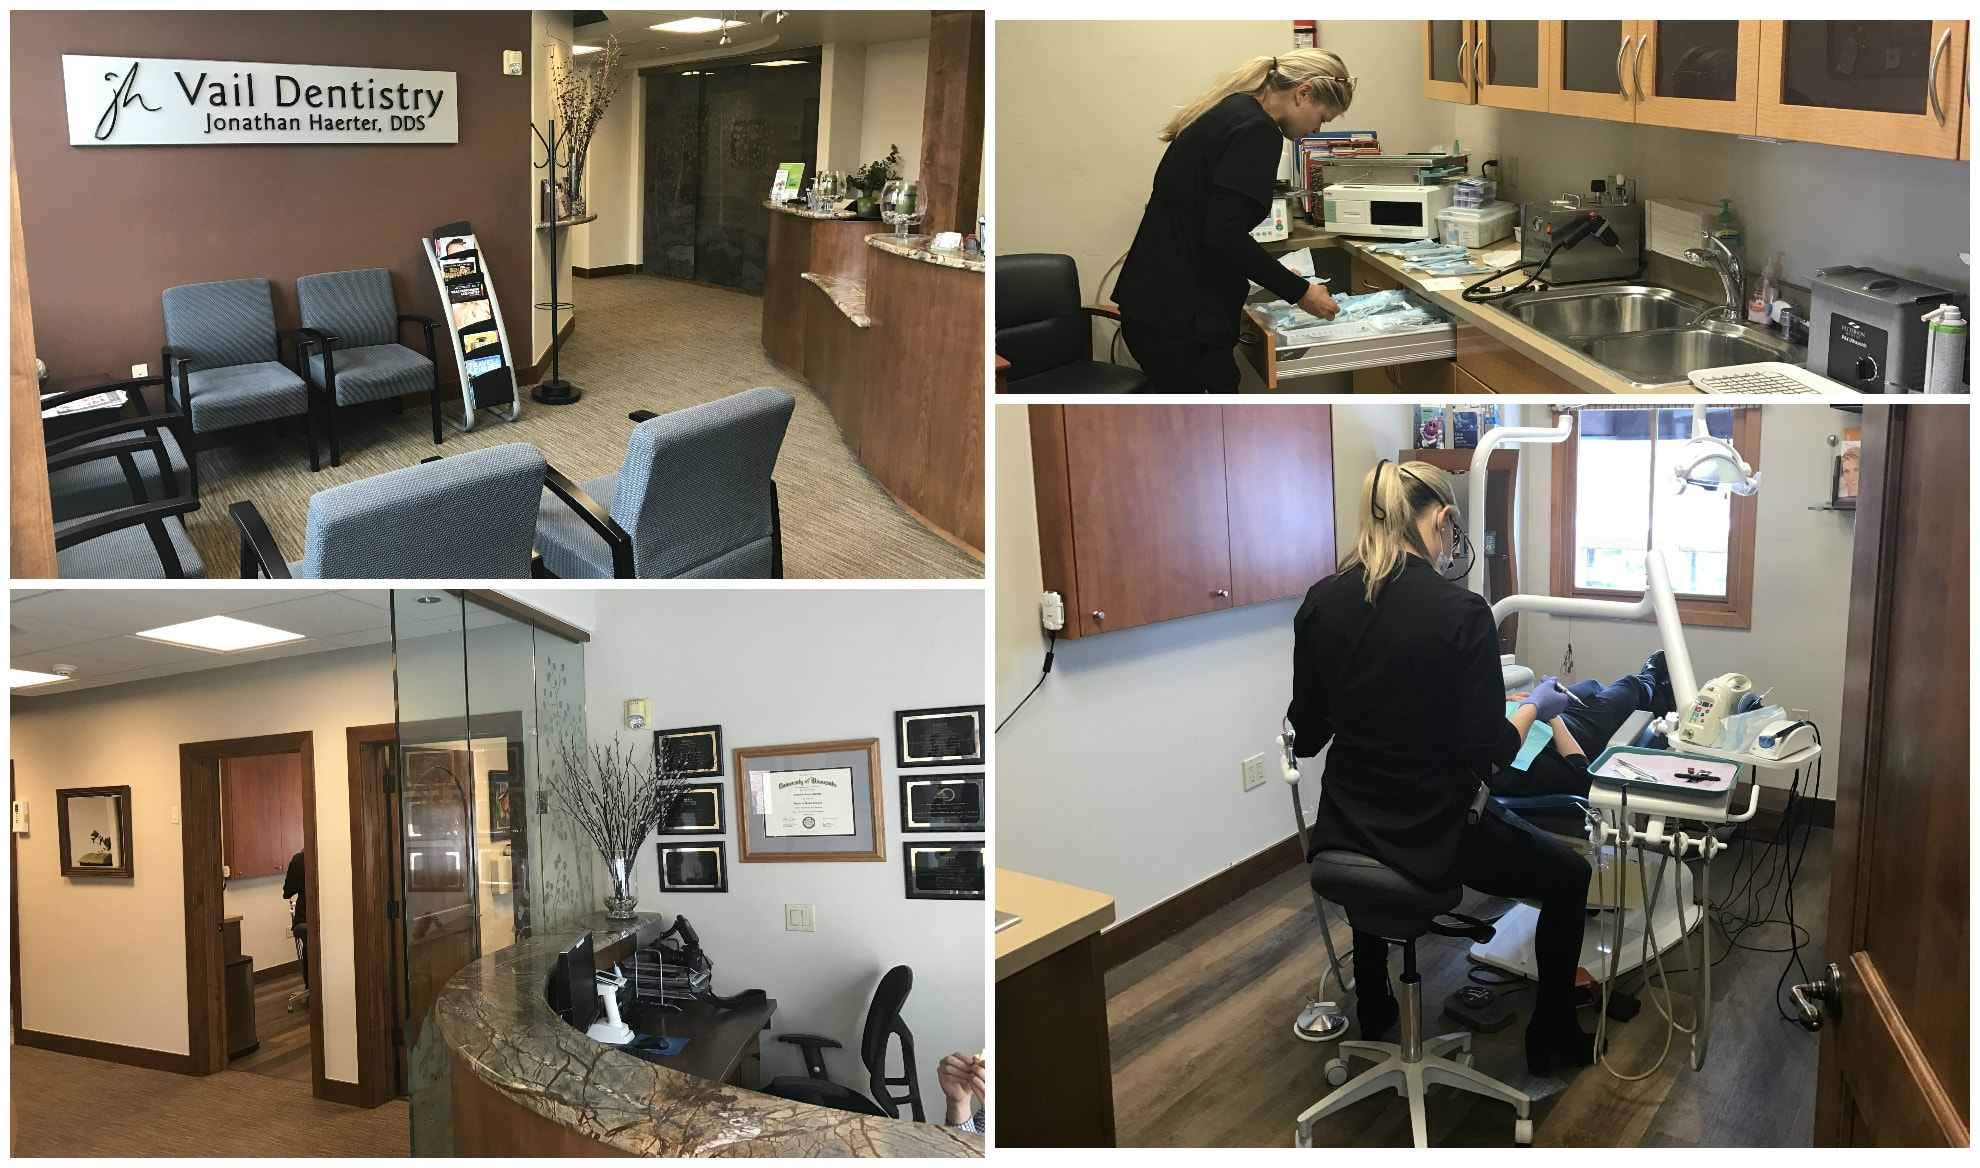 Collage of the Vail Dentistry office